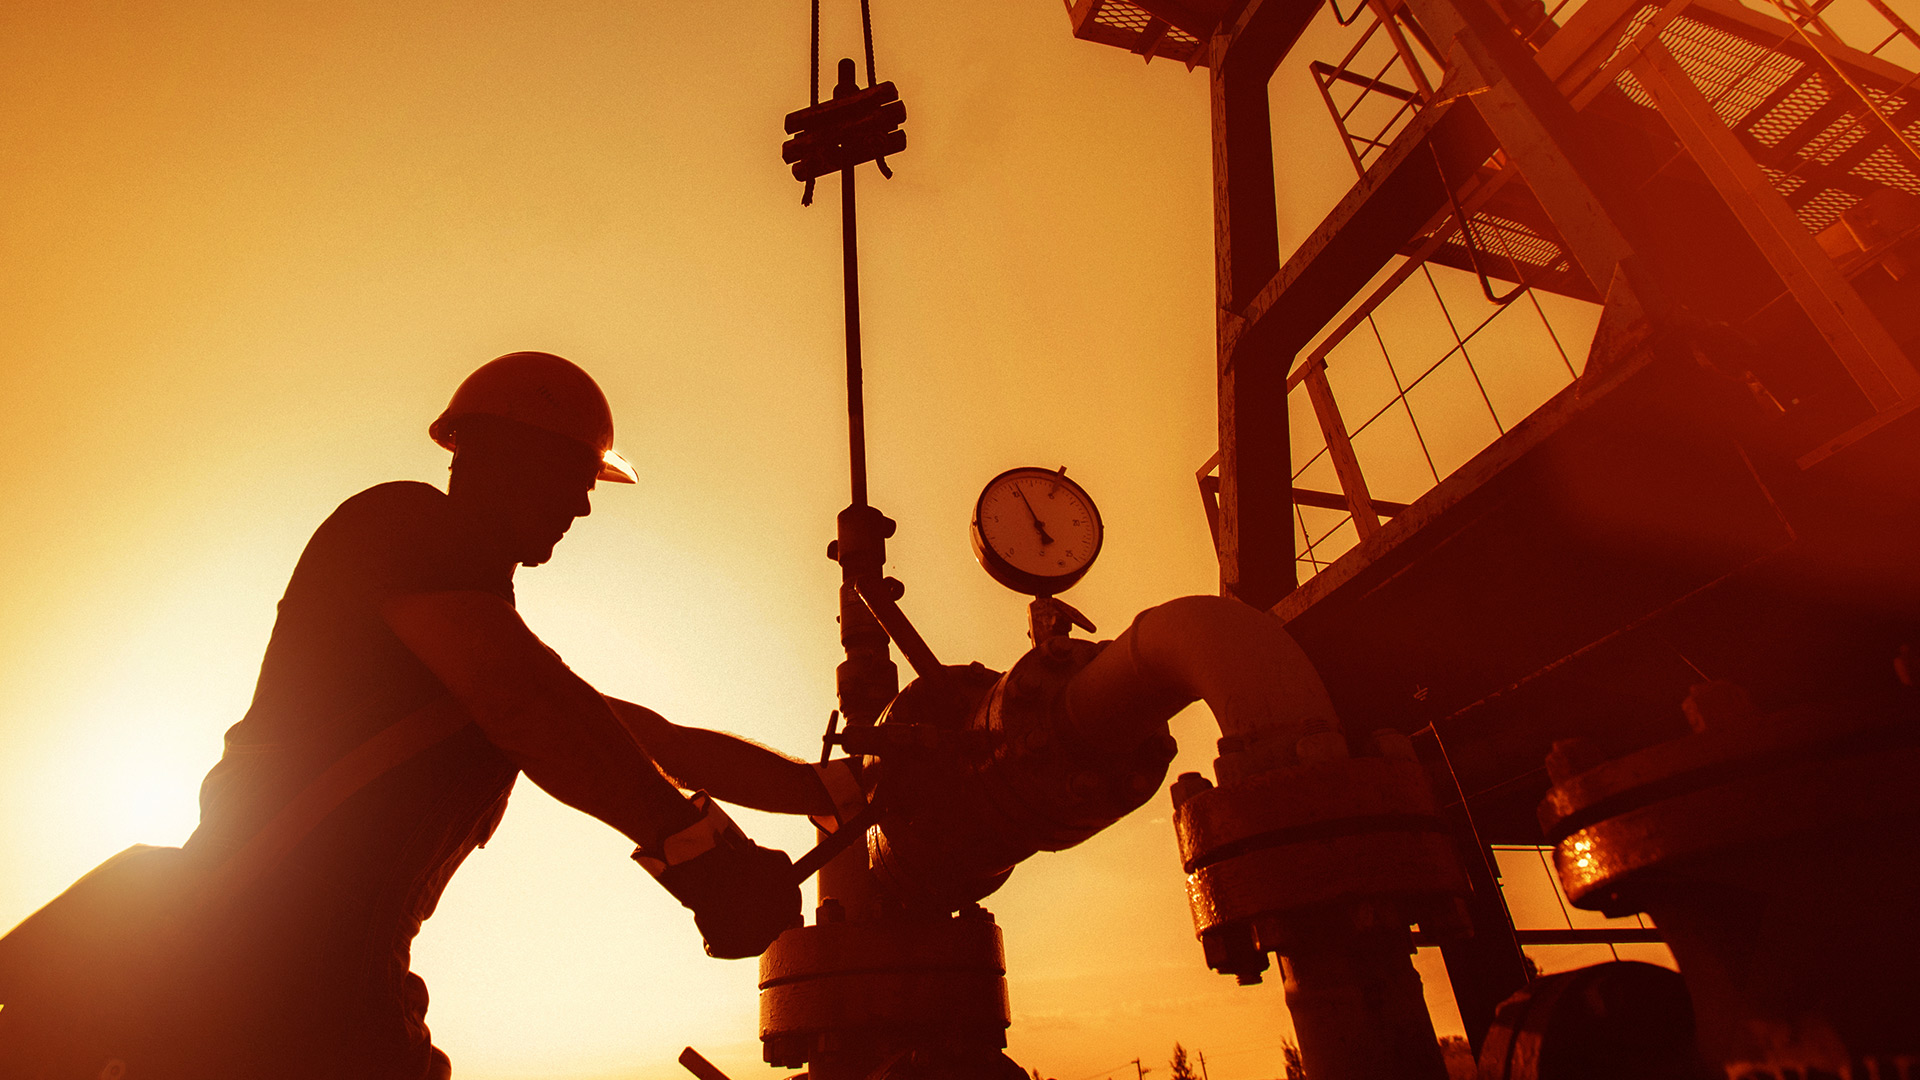 Oil worker checking the oil pump